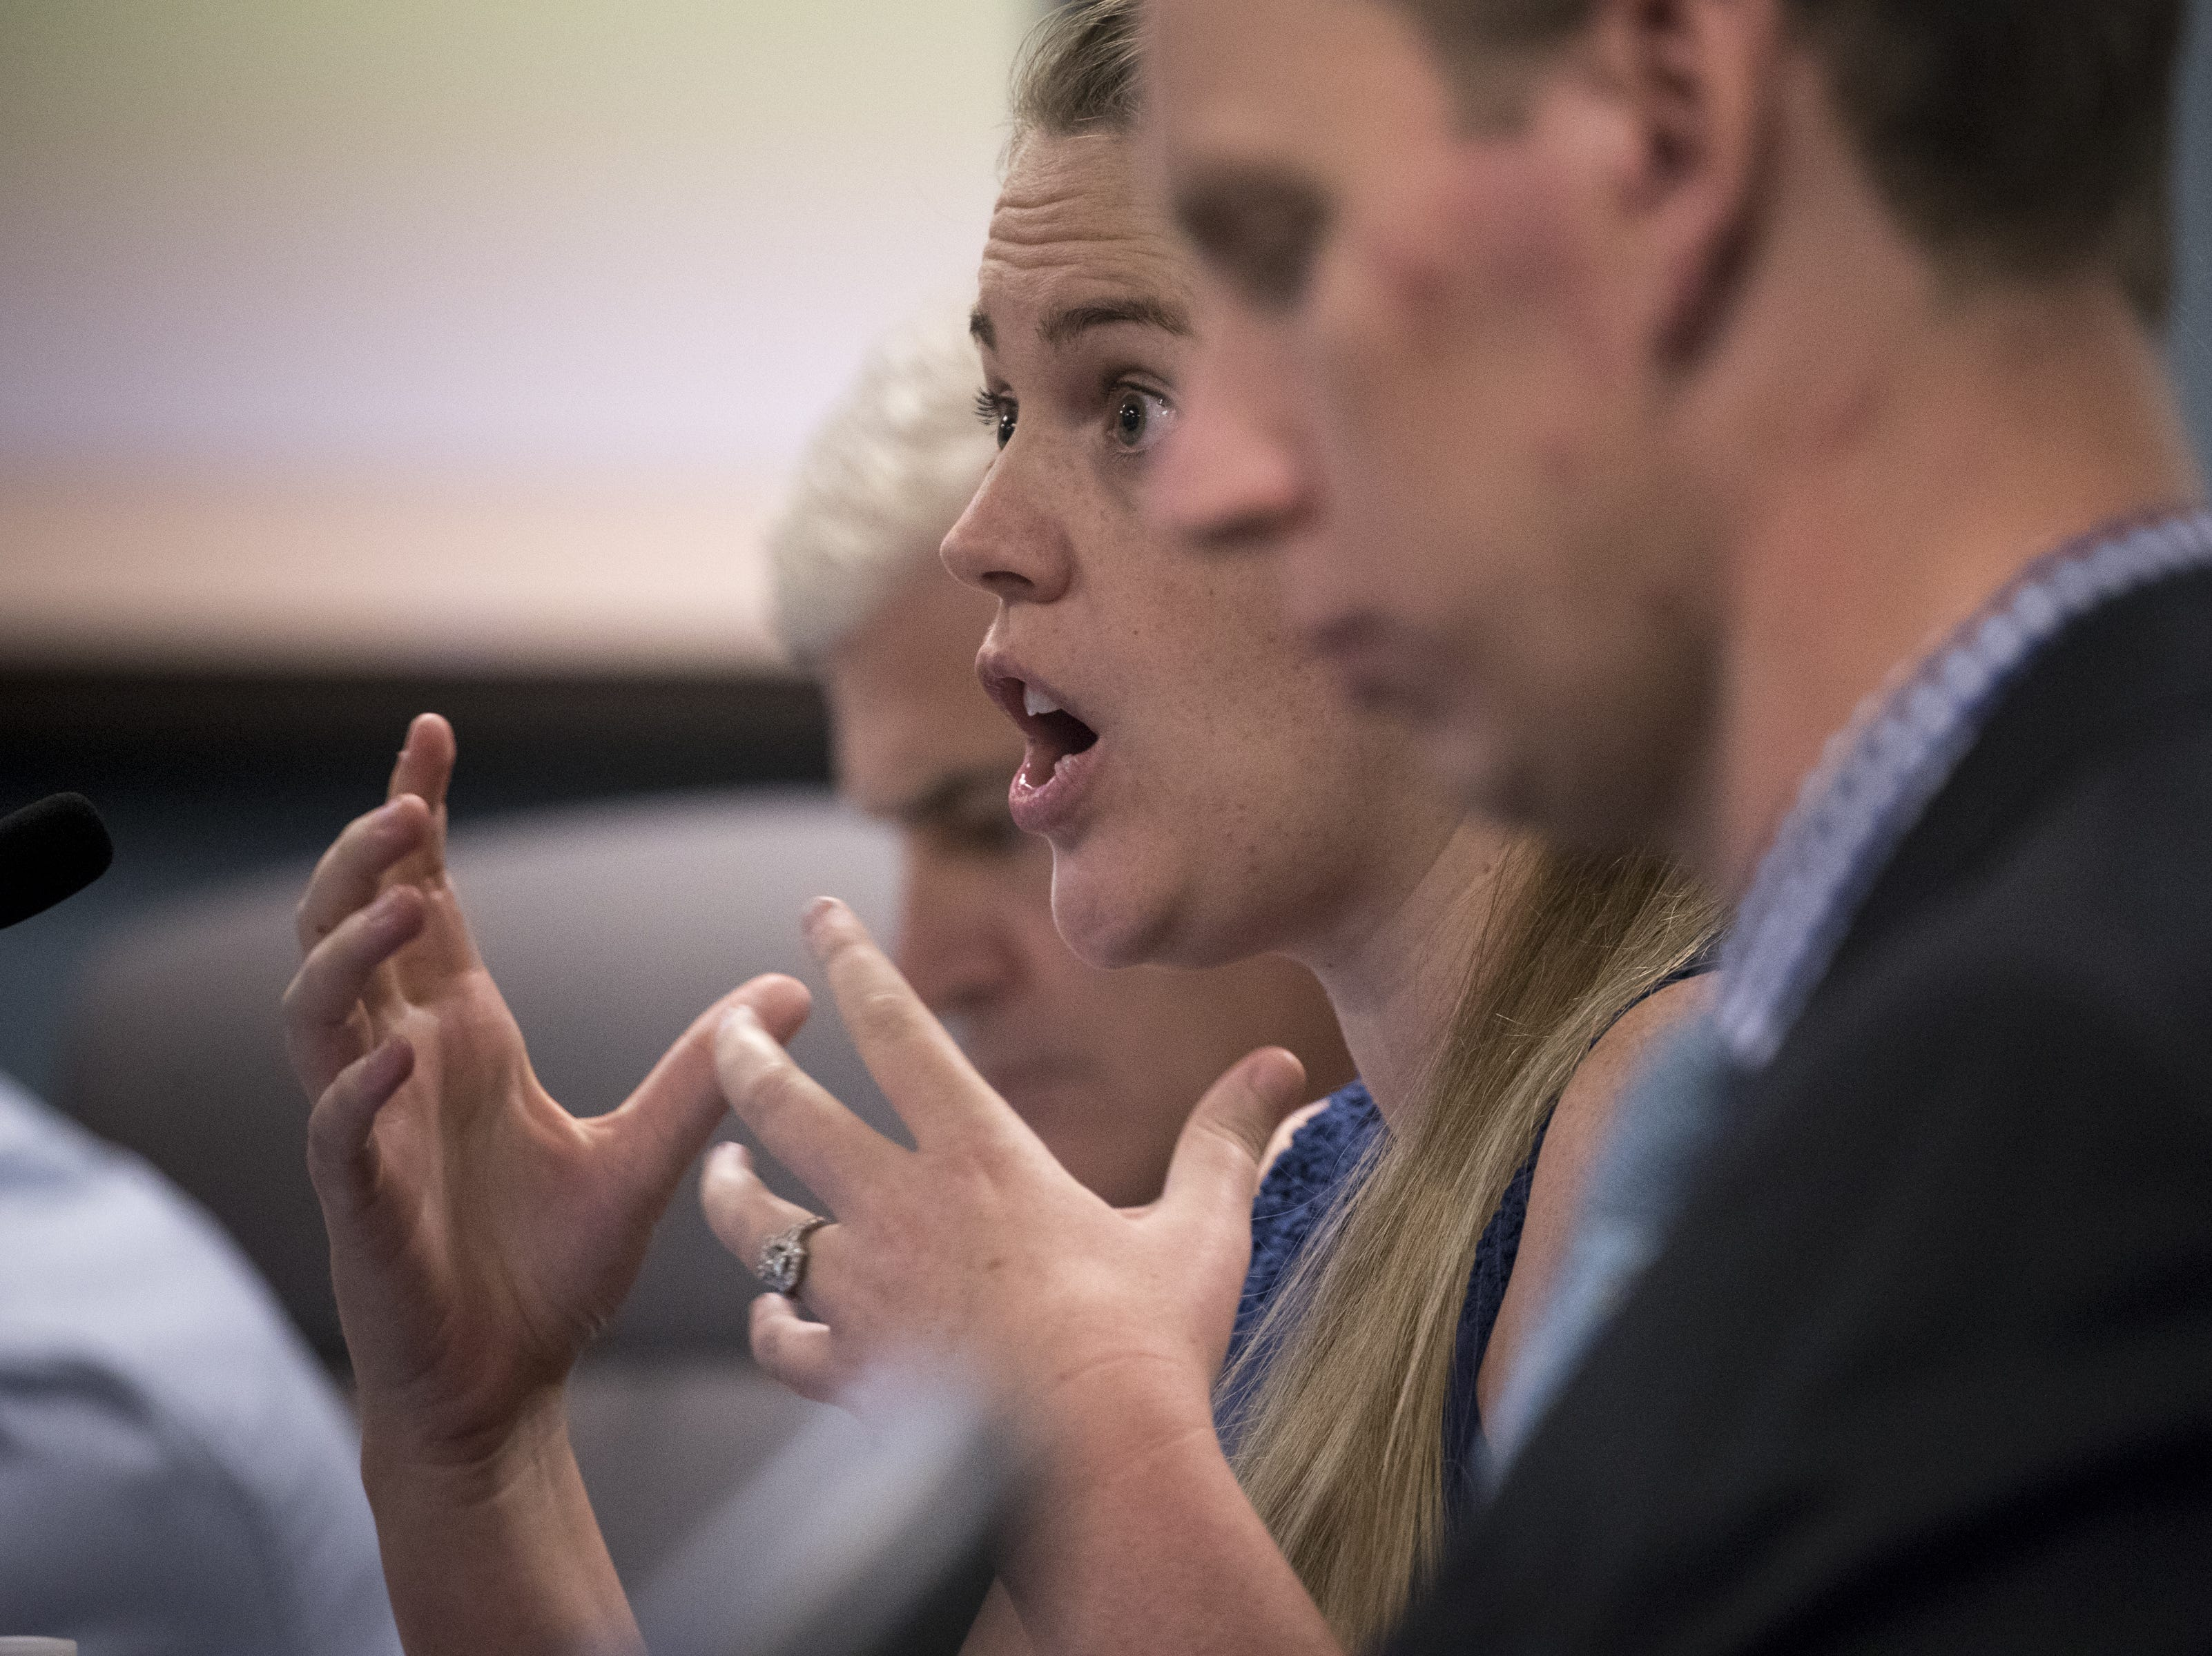 Mary Ellen Lee, a charter school teacher, asks a question during an Arizona State Board for Charter Schools meeting on Sept. 10, 2018, at the Arizona Department of Education in Phoenix.